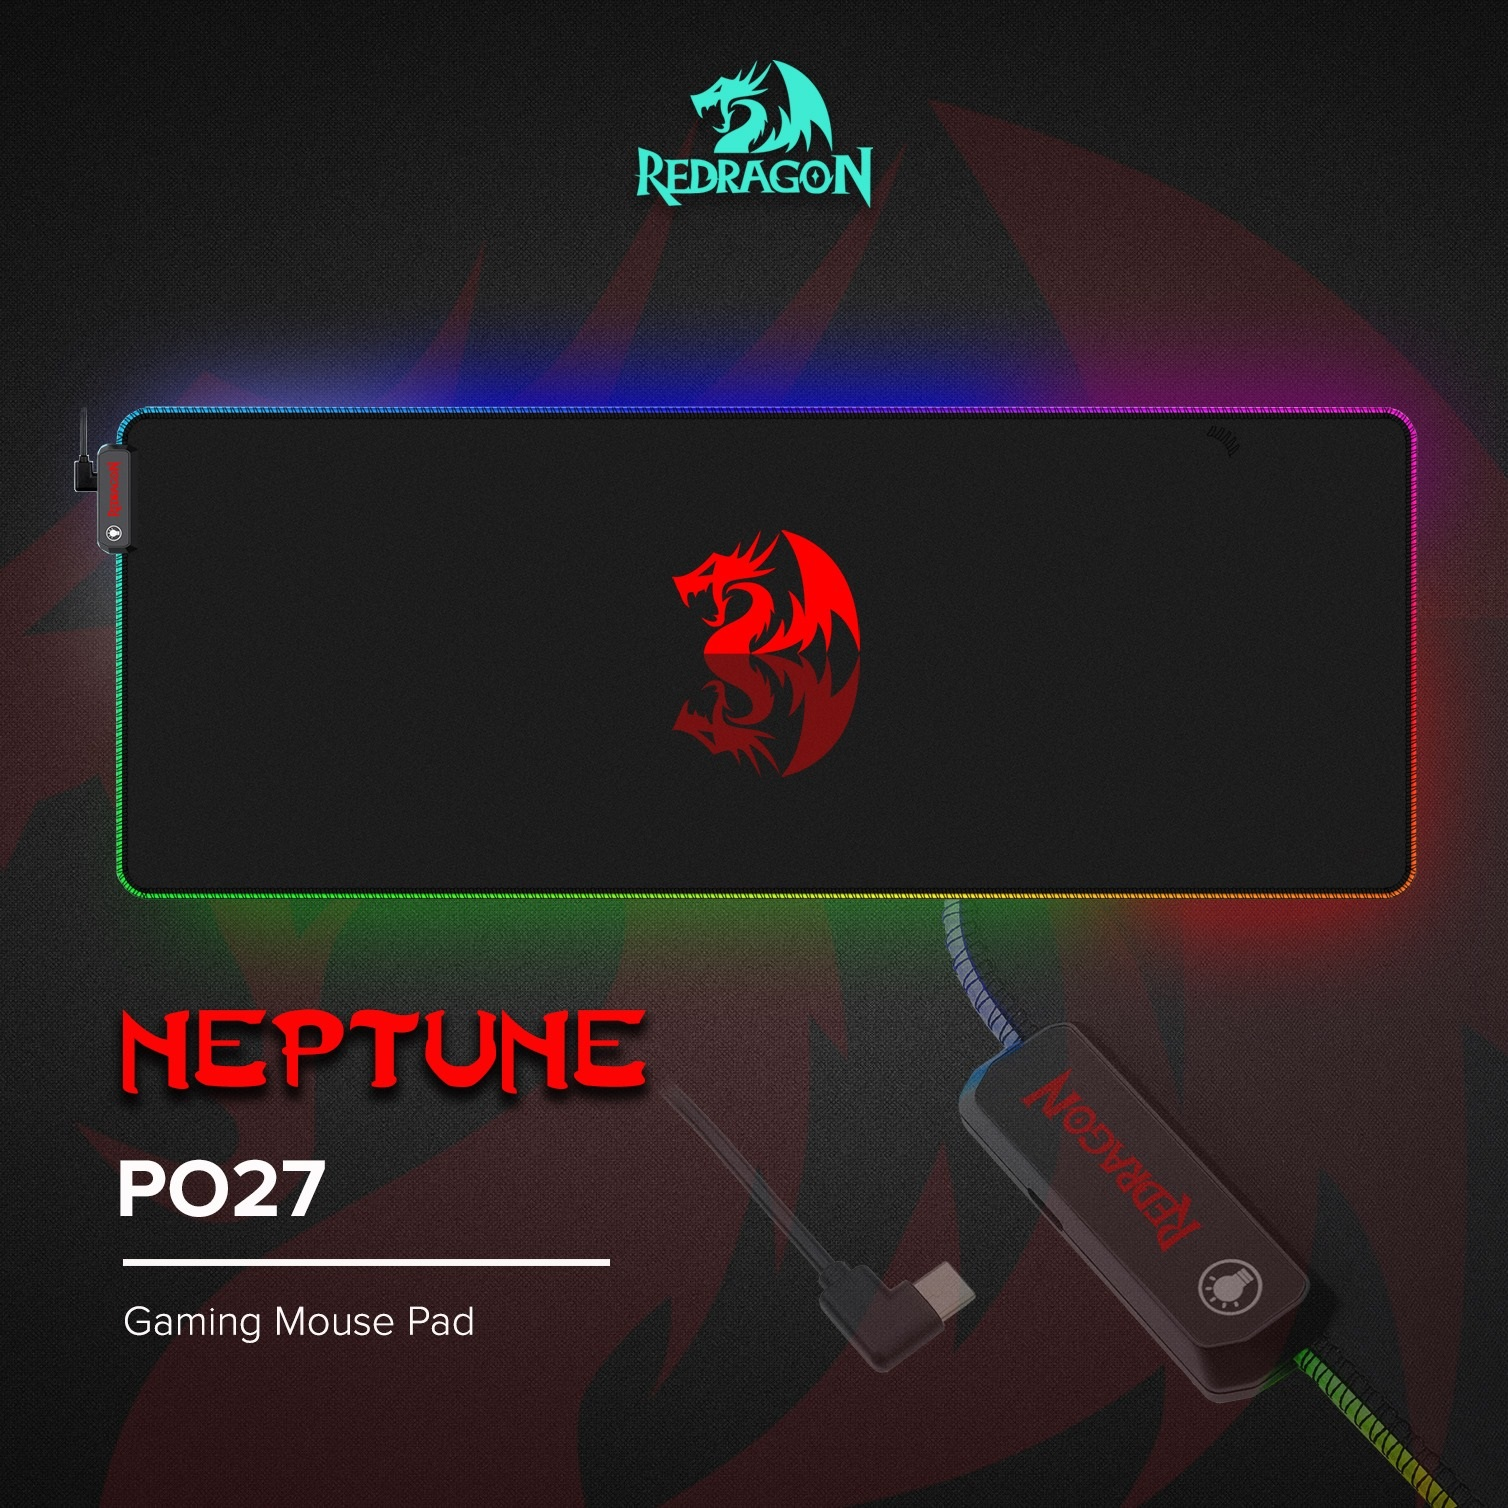 Redragon Neptune RGB P027 Soft Gaming Mouse Mat Singapore